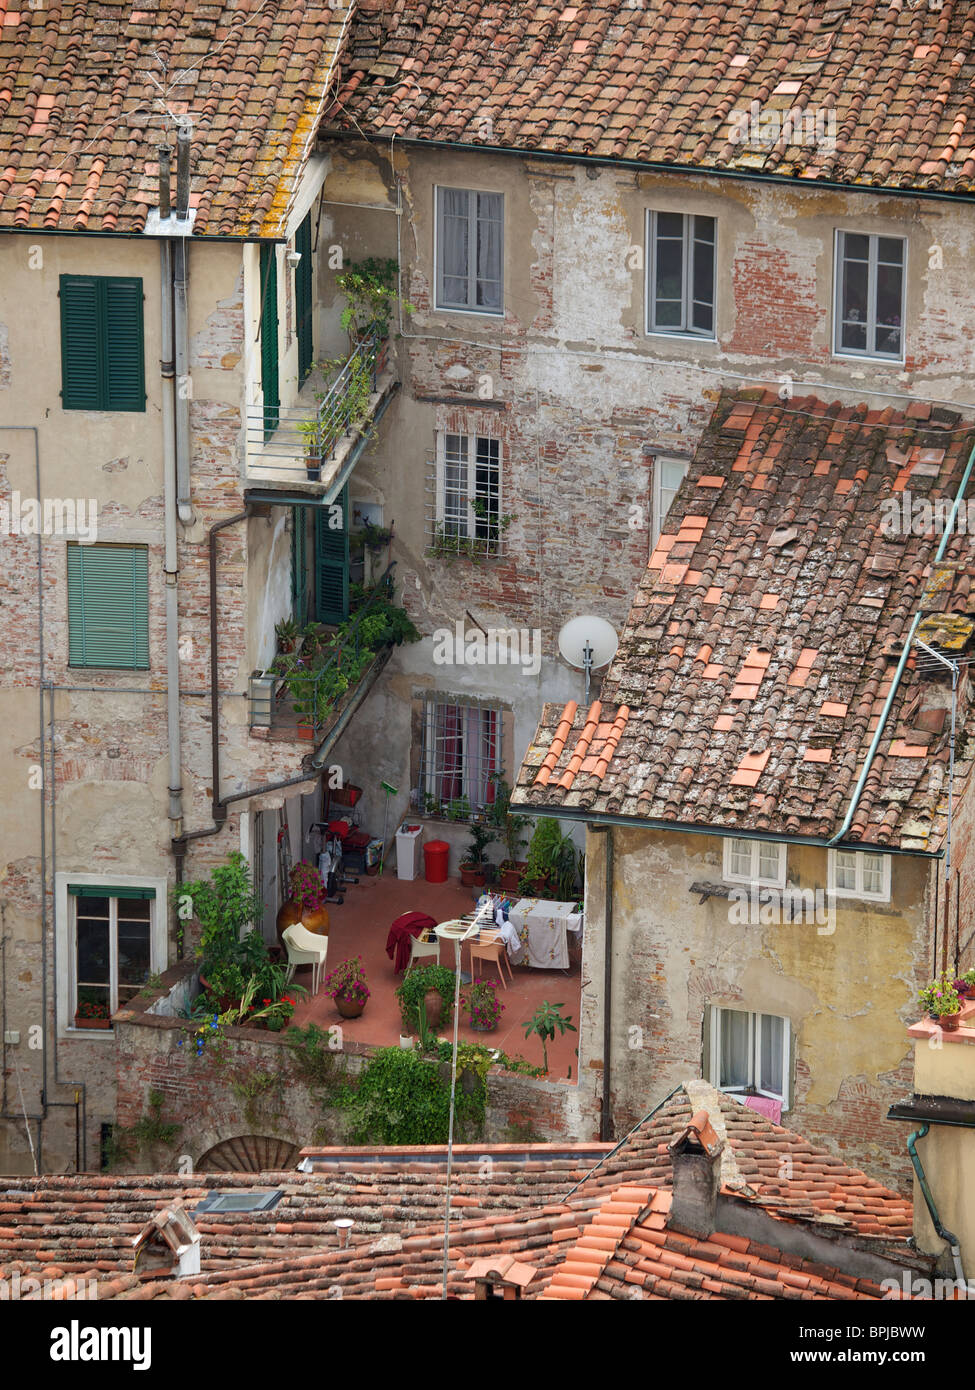 Homes In The Old City Of Lucca Tuscany Italy Picture